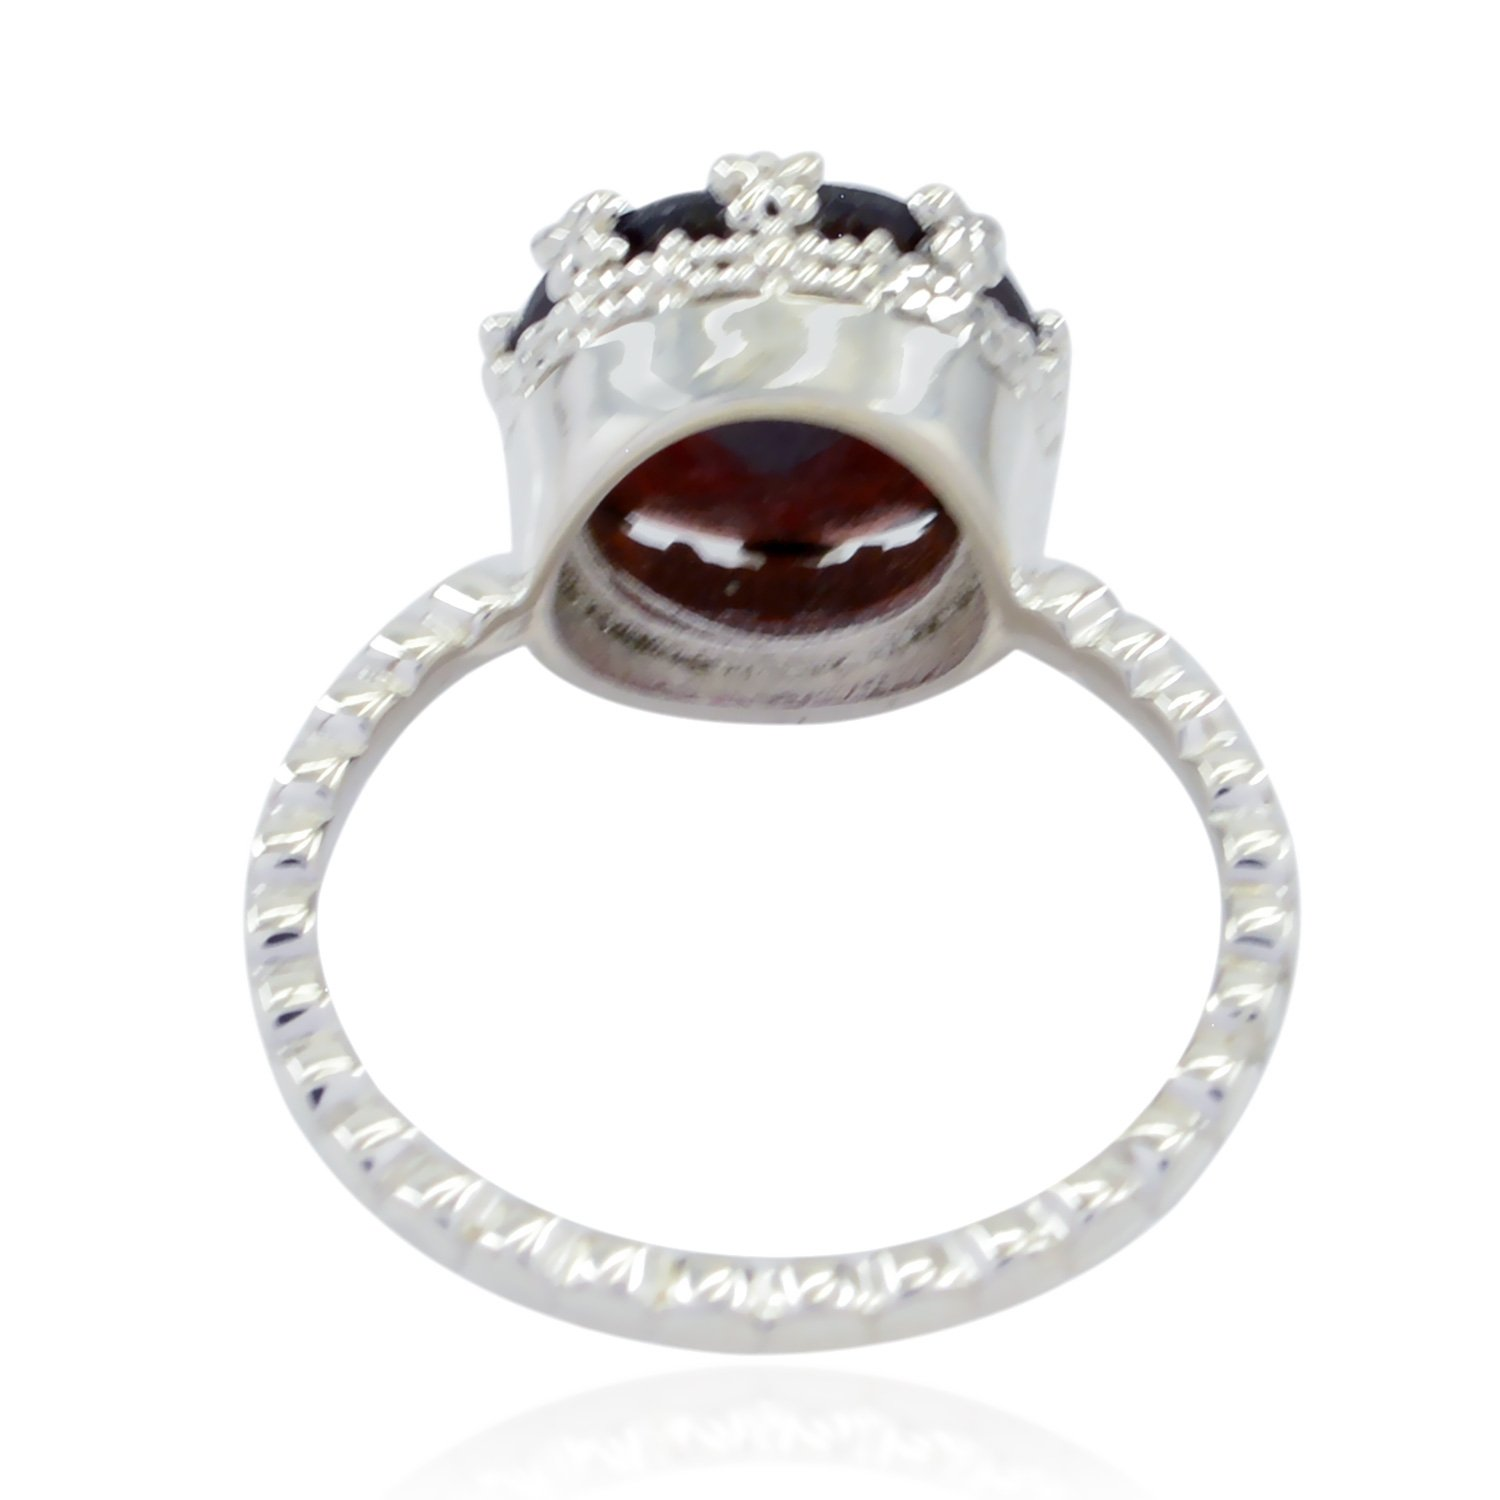 jents Jewelry Good Item Gift for Girlfriend Bohemian 925 Sterling Silver Red Garnet Lucky Gemstone Ring Lucky Gemstone Round Faceted Garnet Ring